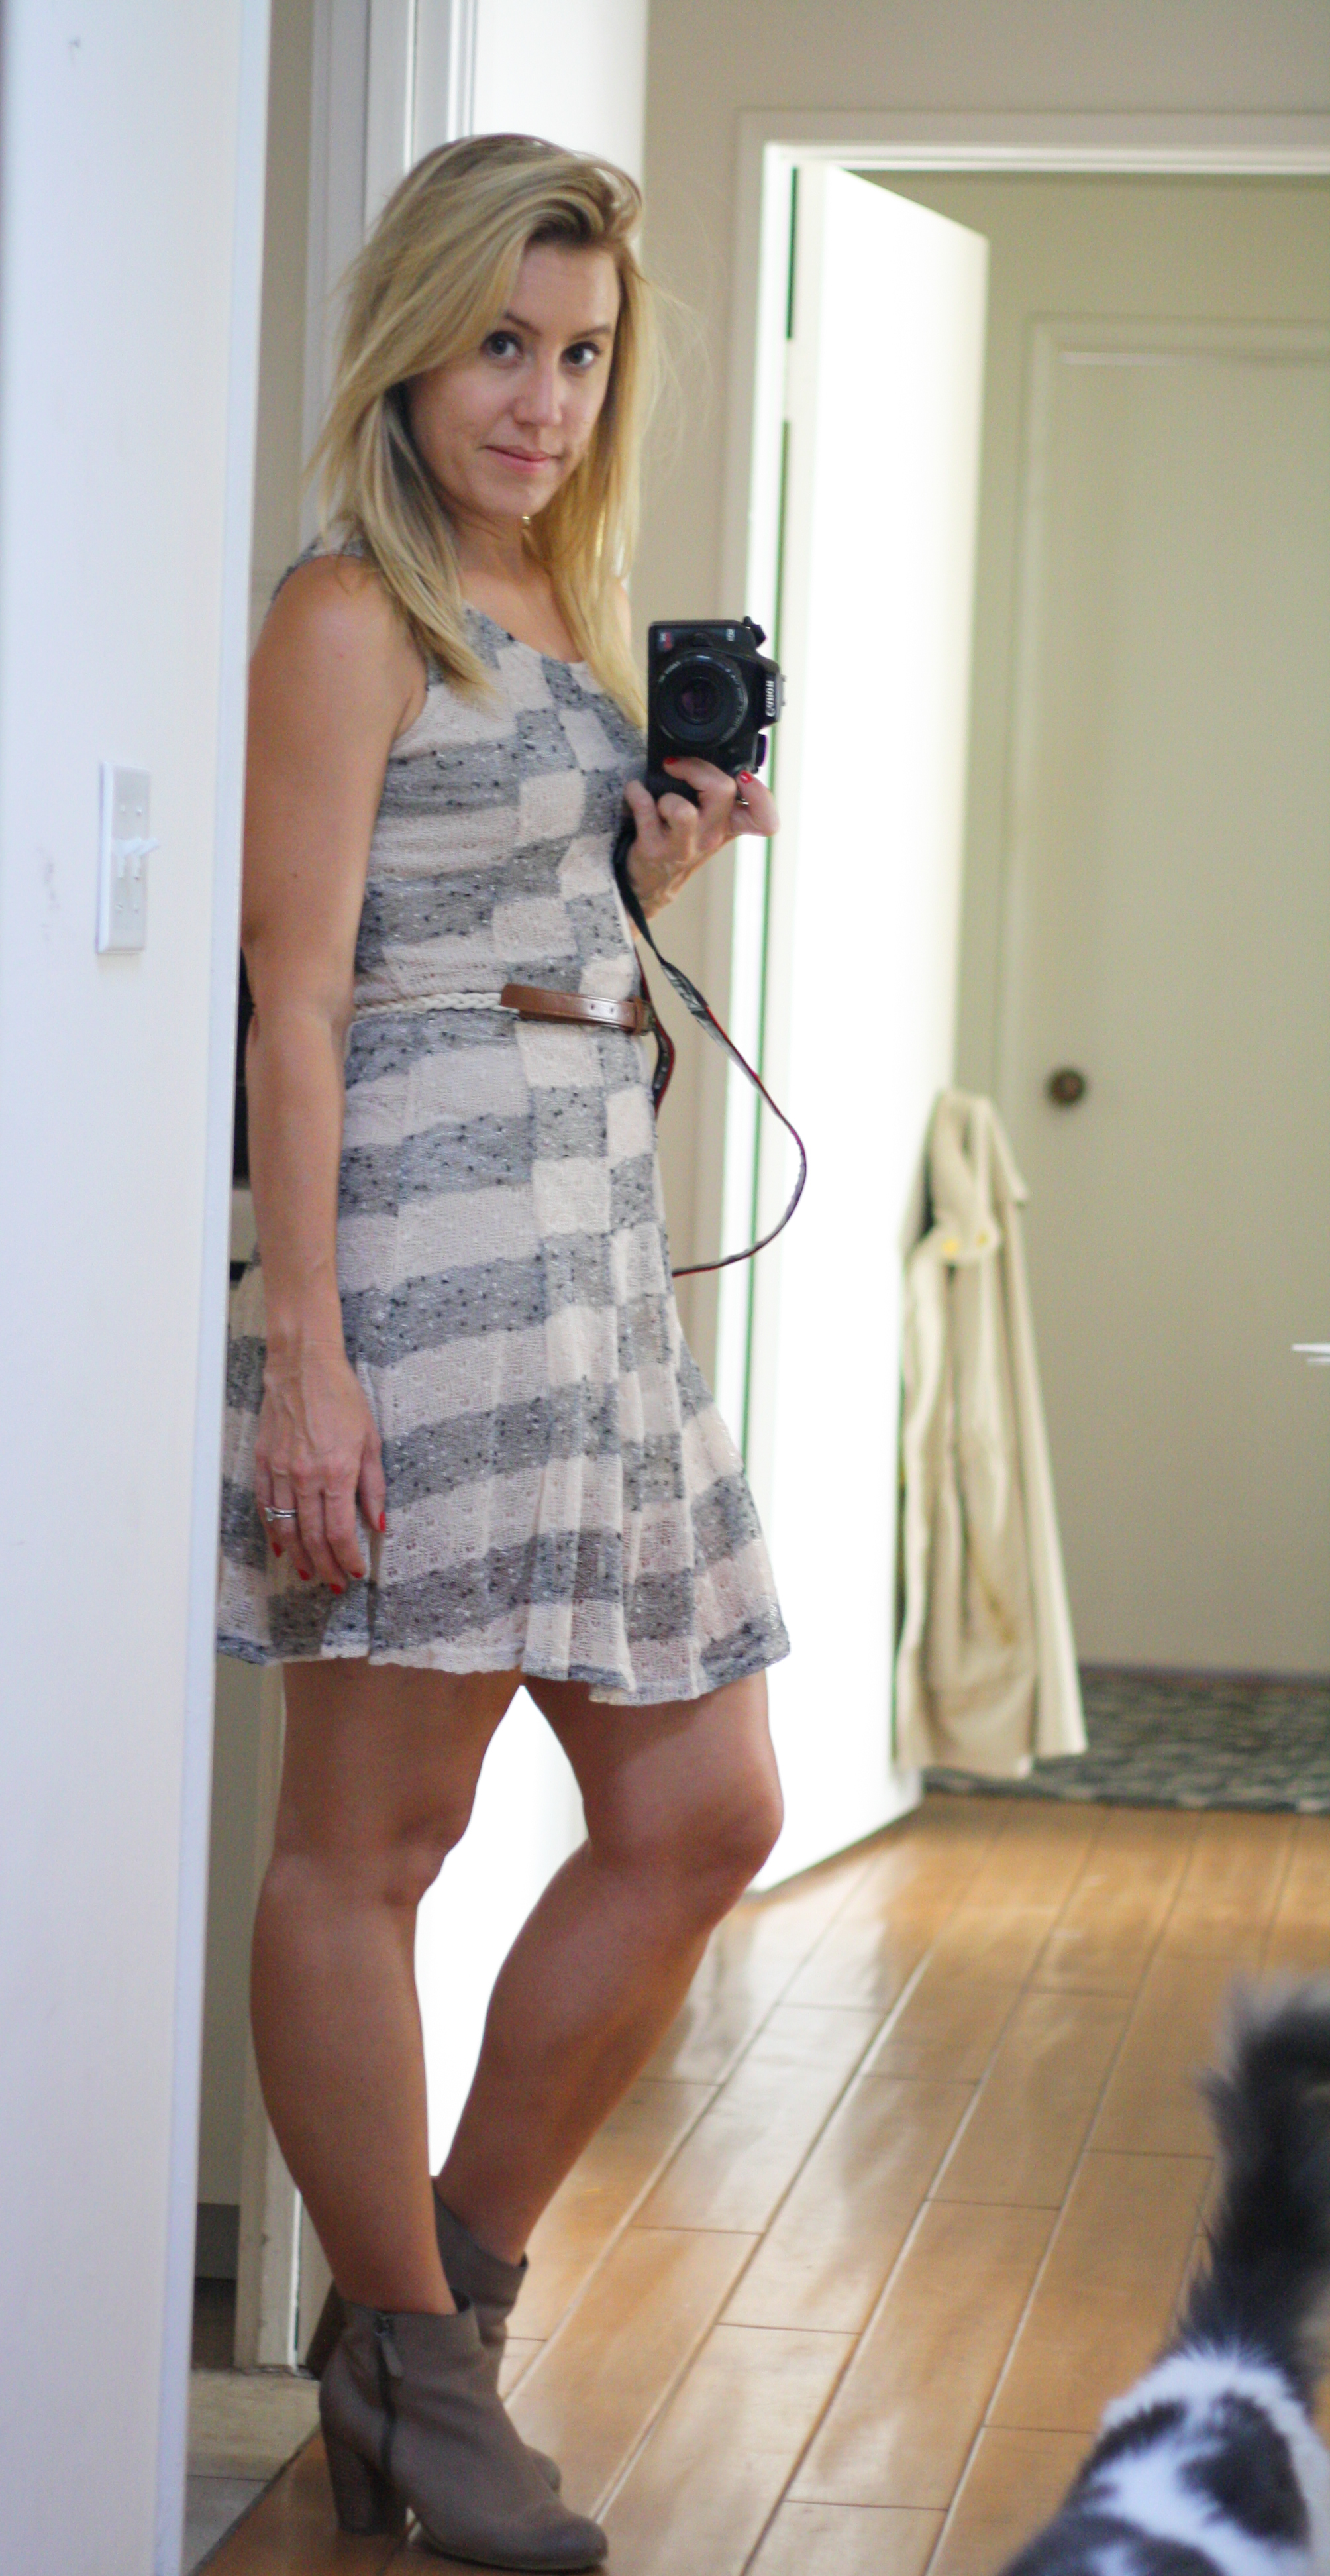 Checkered Dress Shot-2.jpg